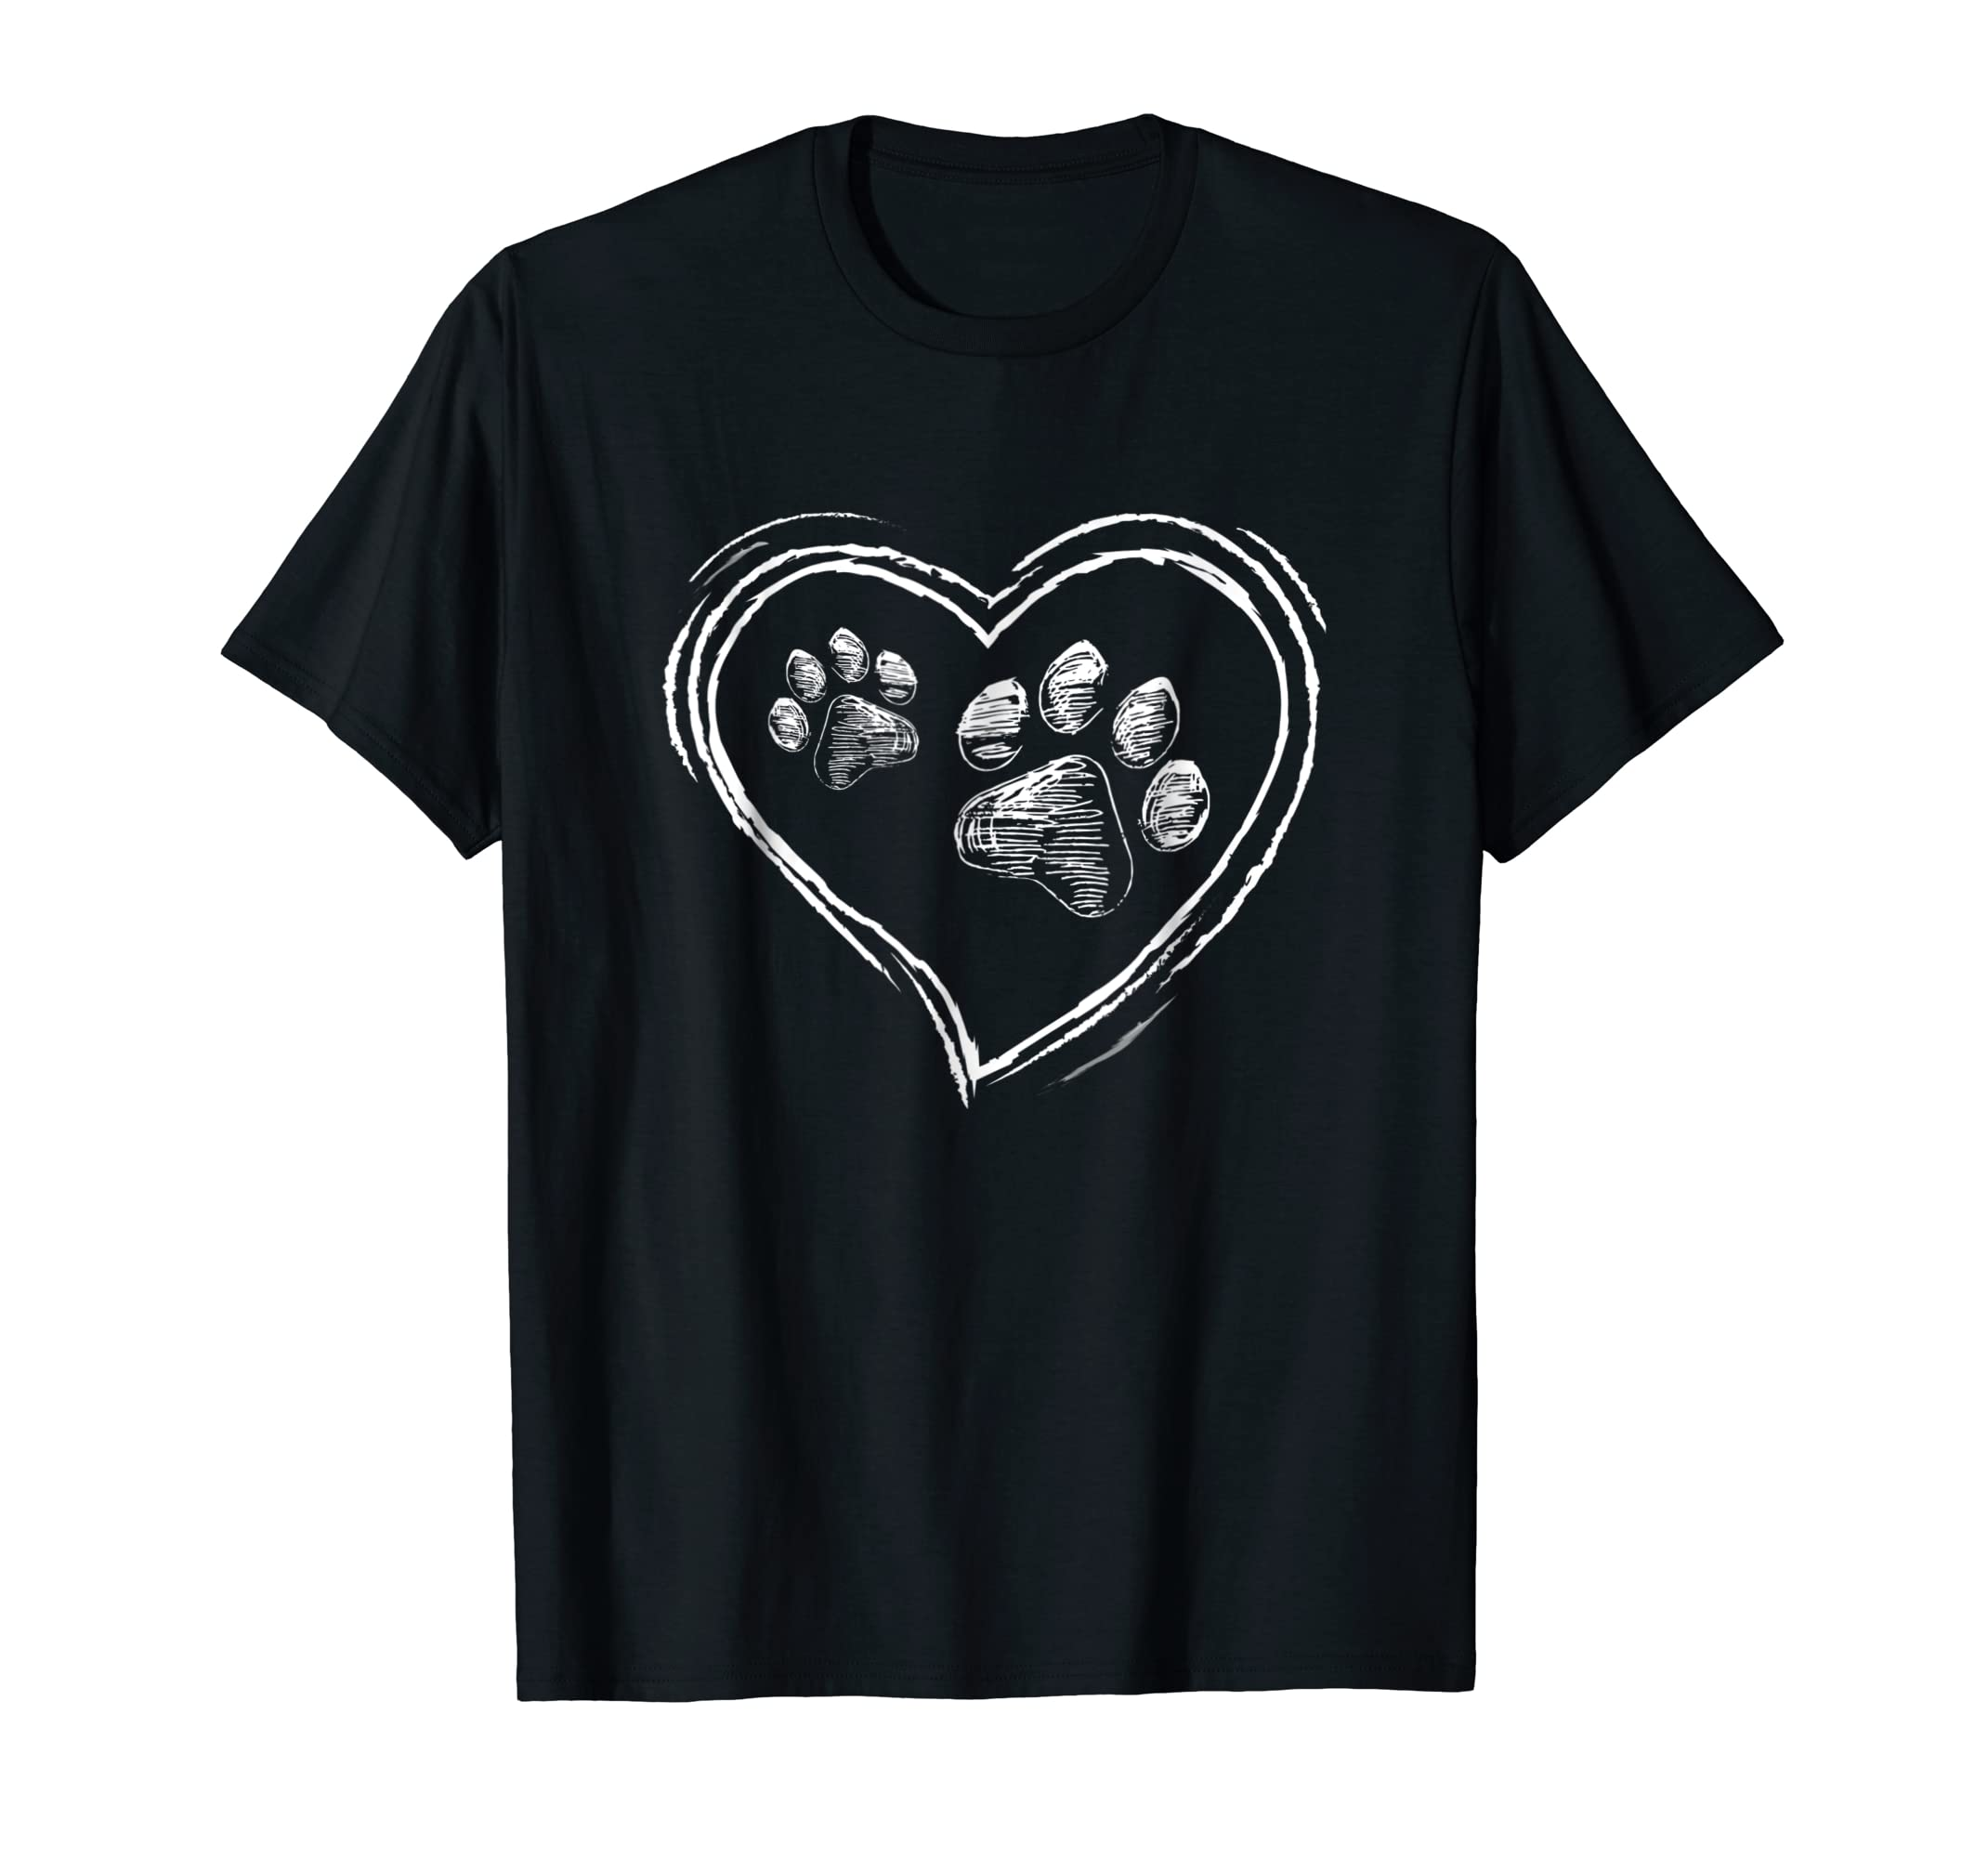 Dog Puppy Shirt - I Love Dogs Paw Print Heart Cute Women Men-Men's T-Shirt-Black